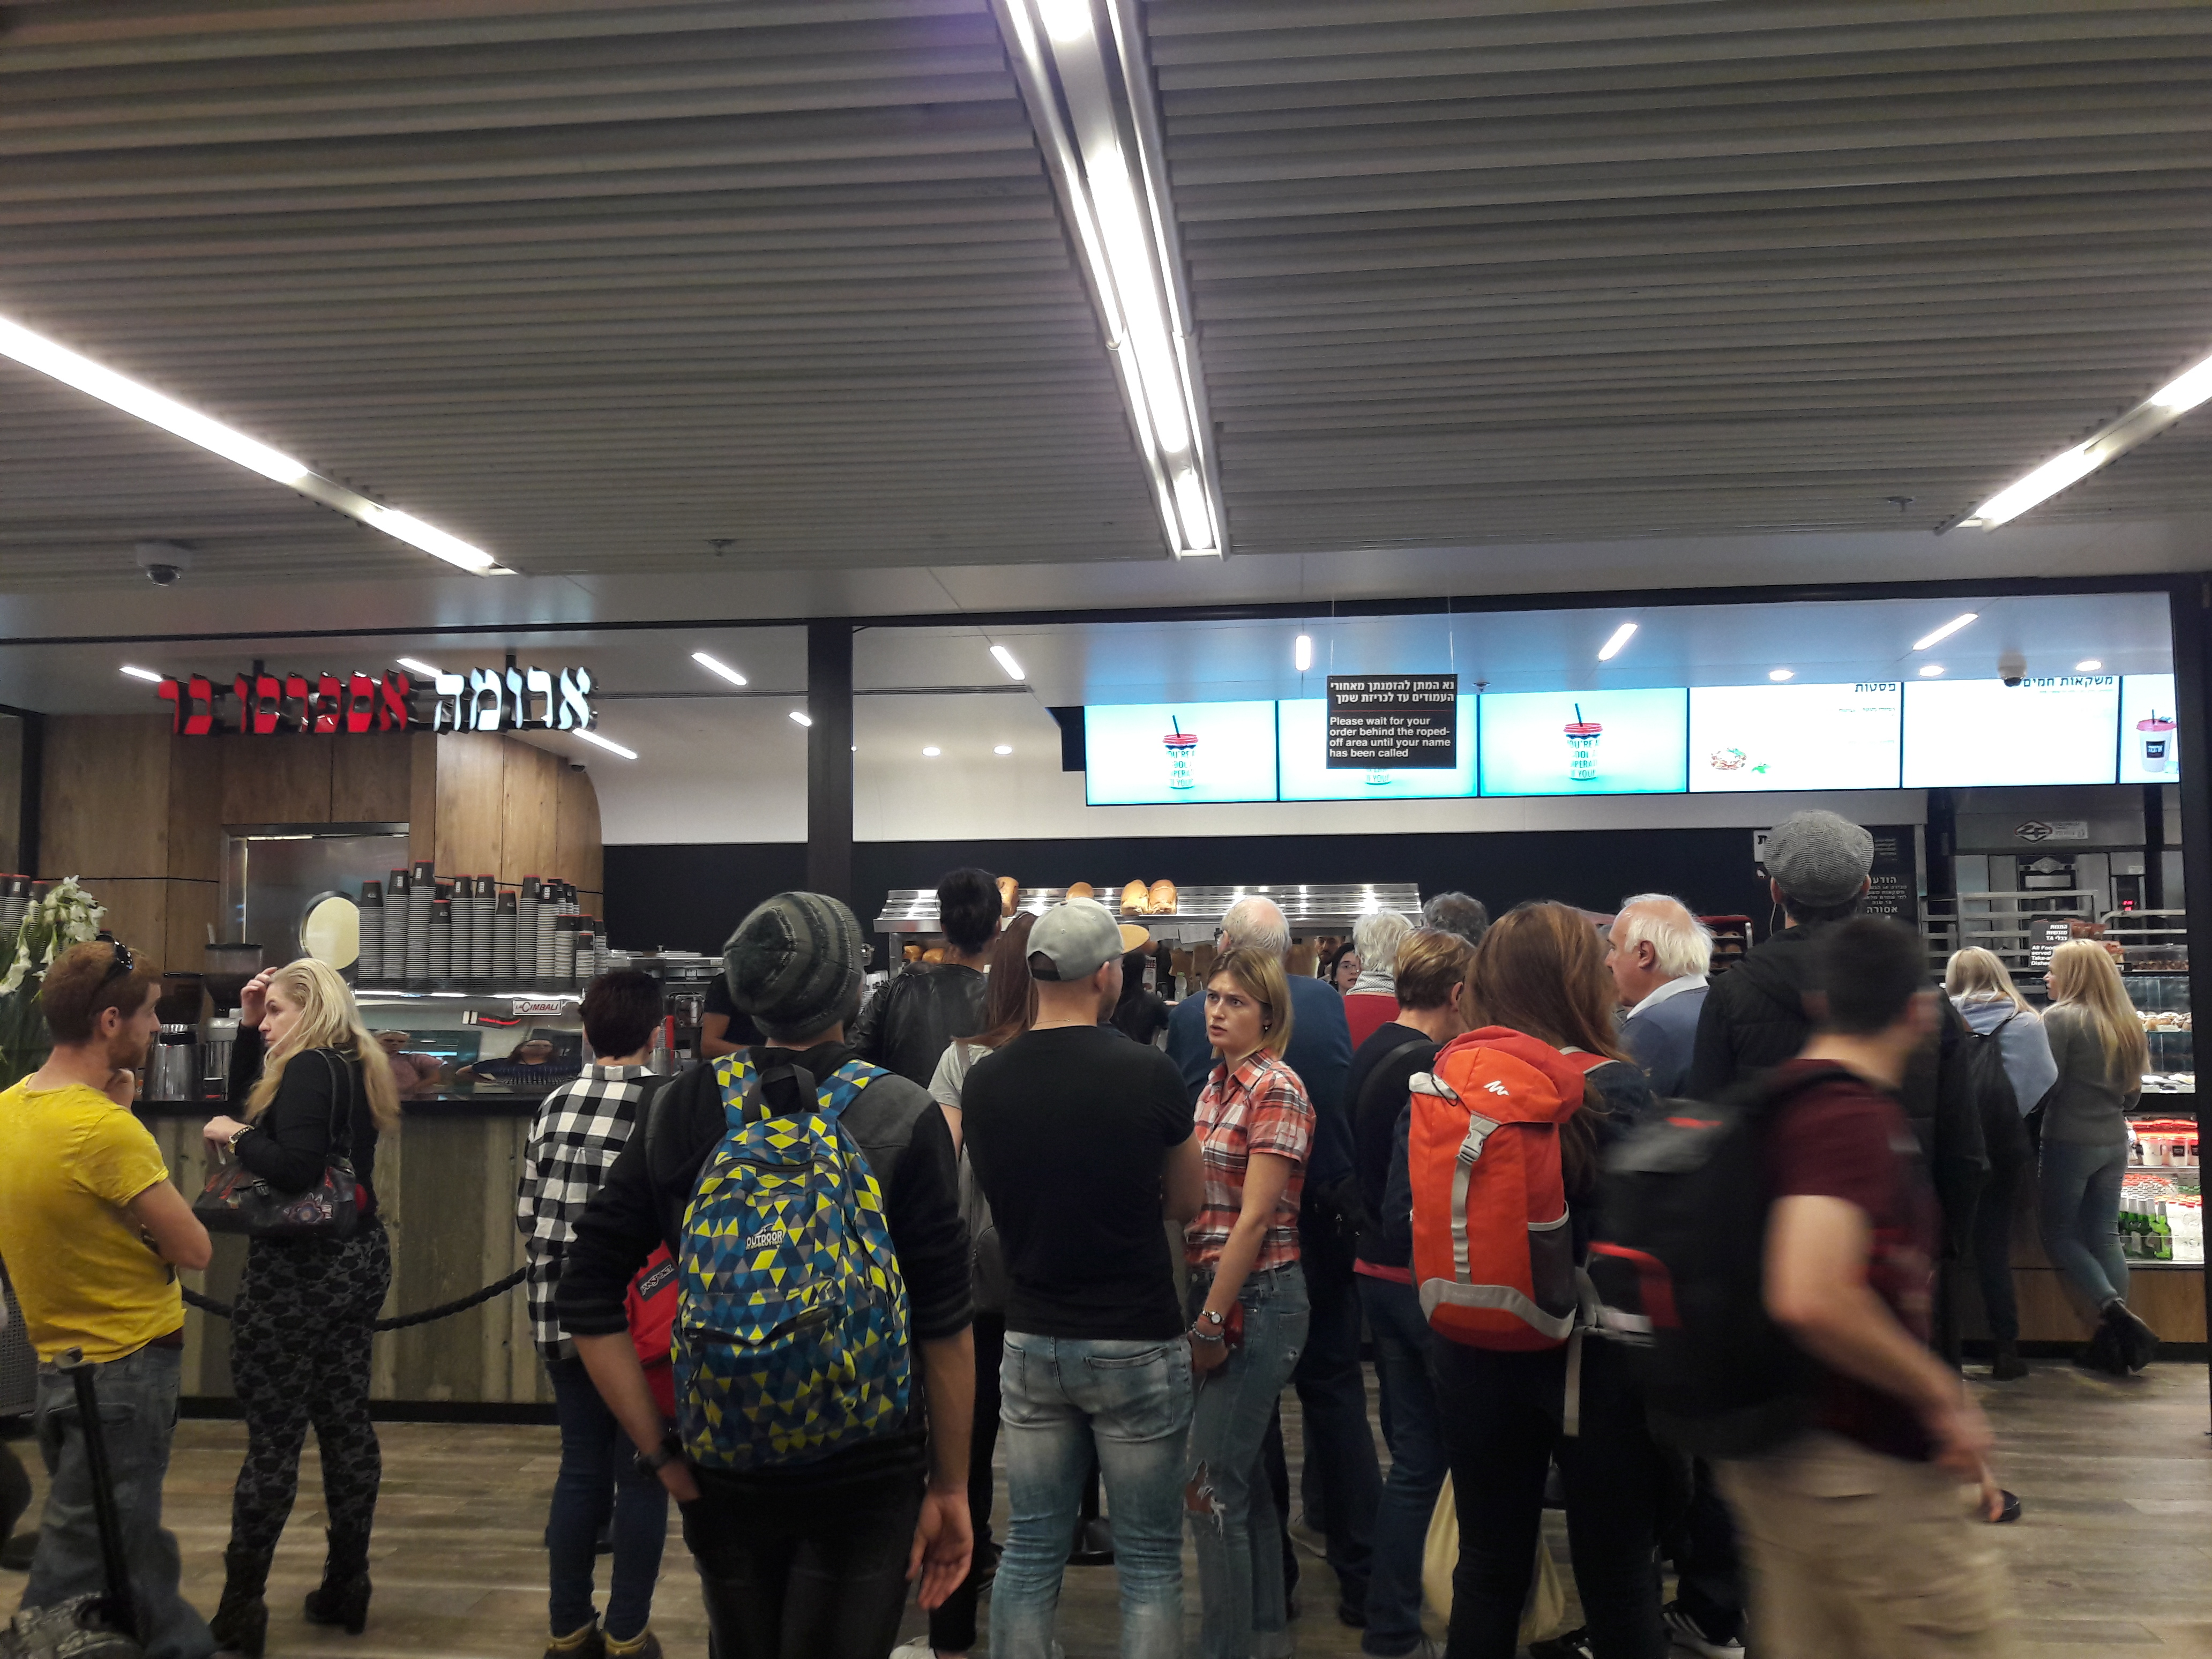 Ben Gurion Airport Security: My Experience